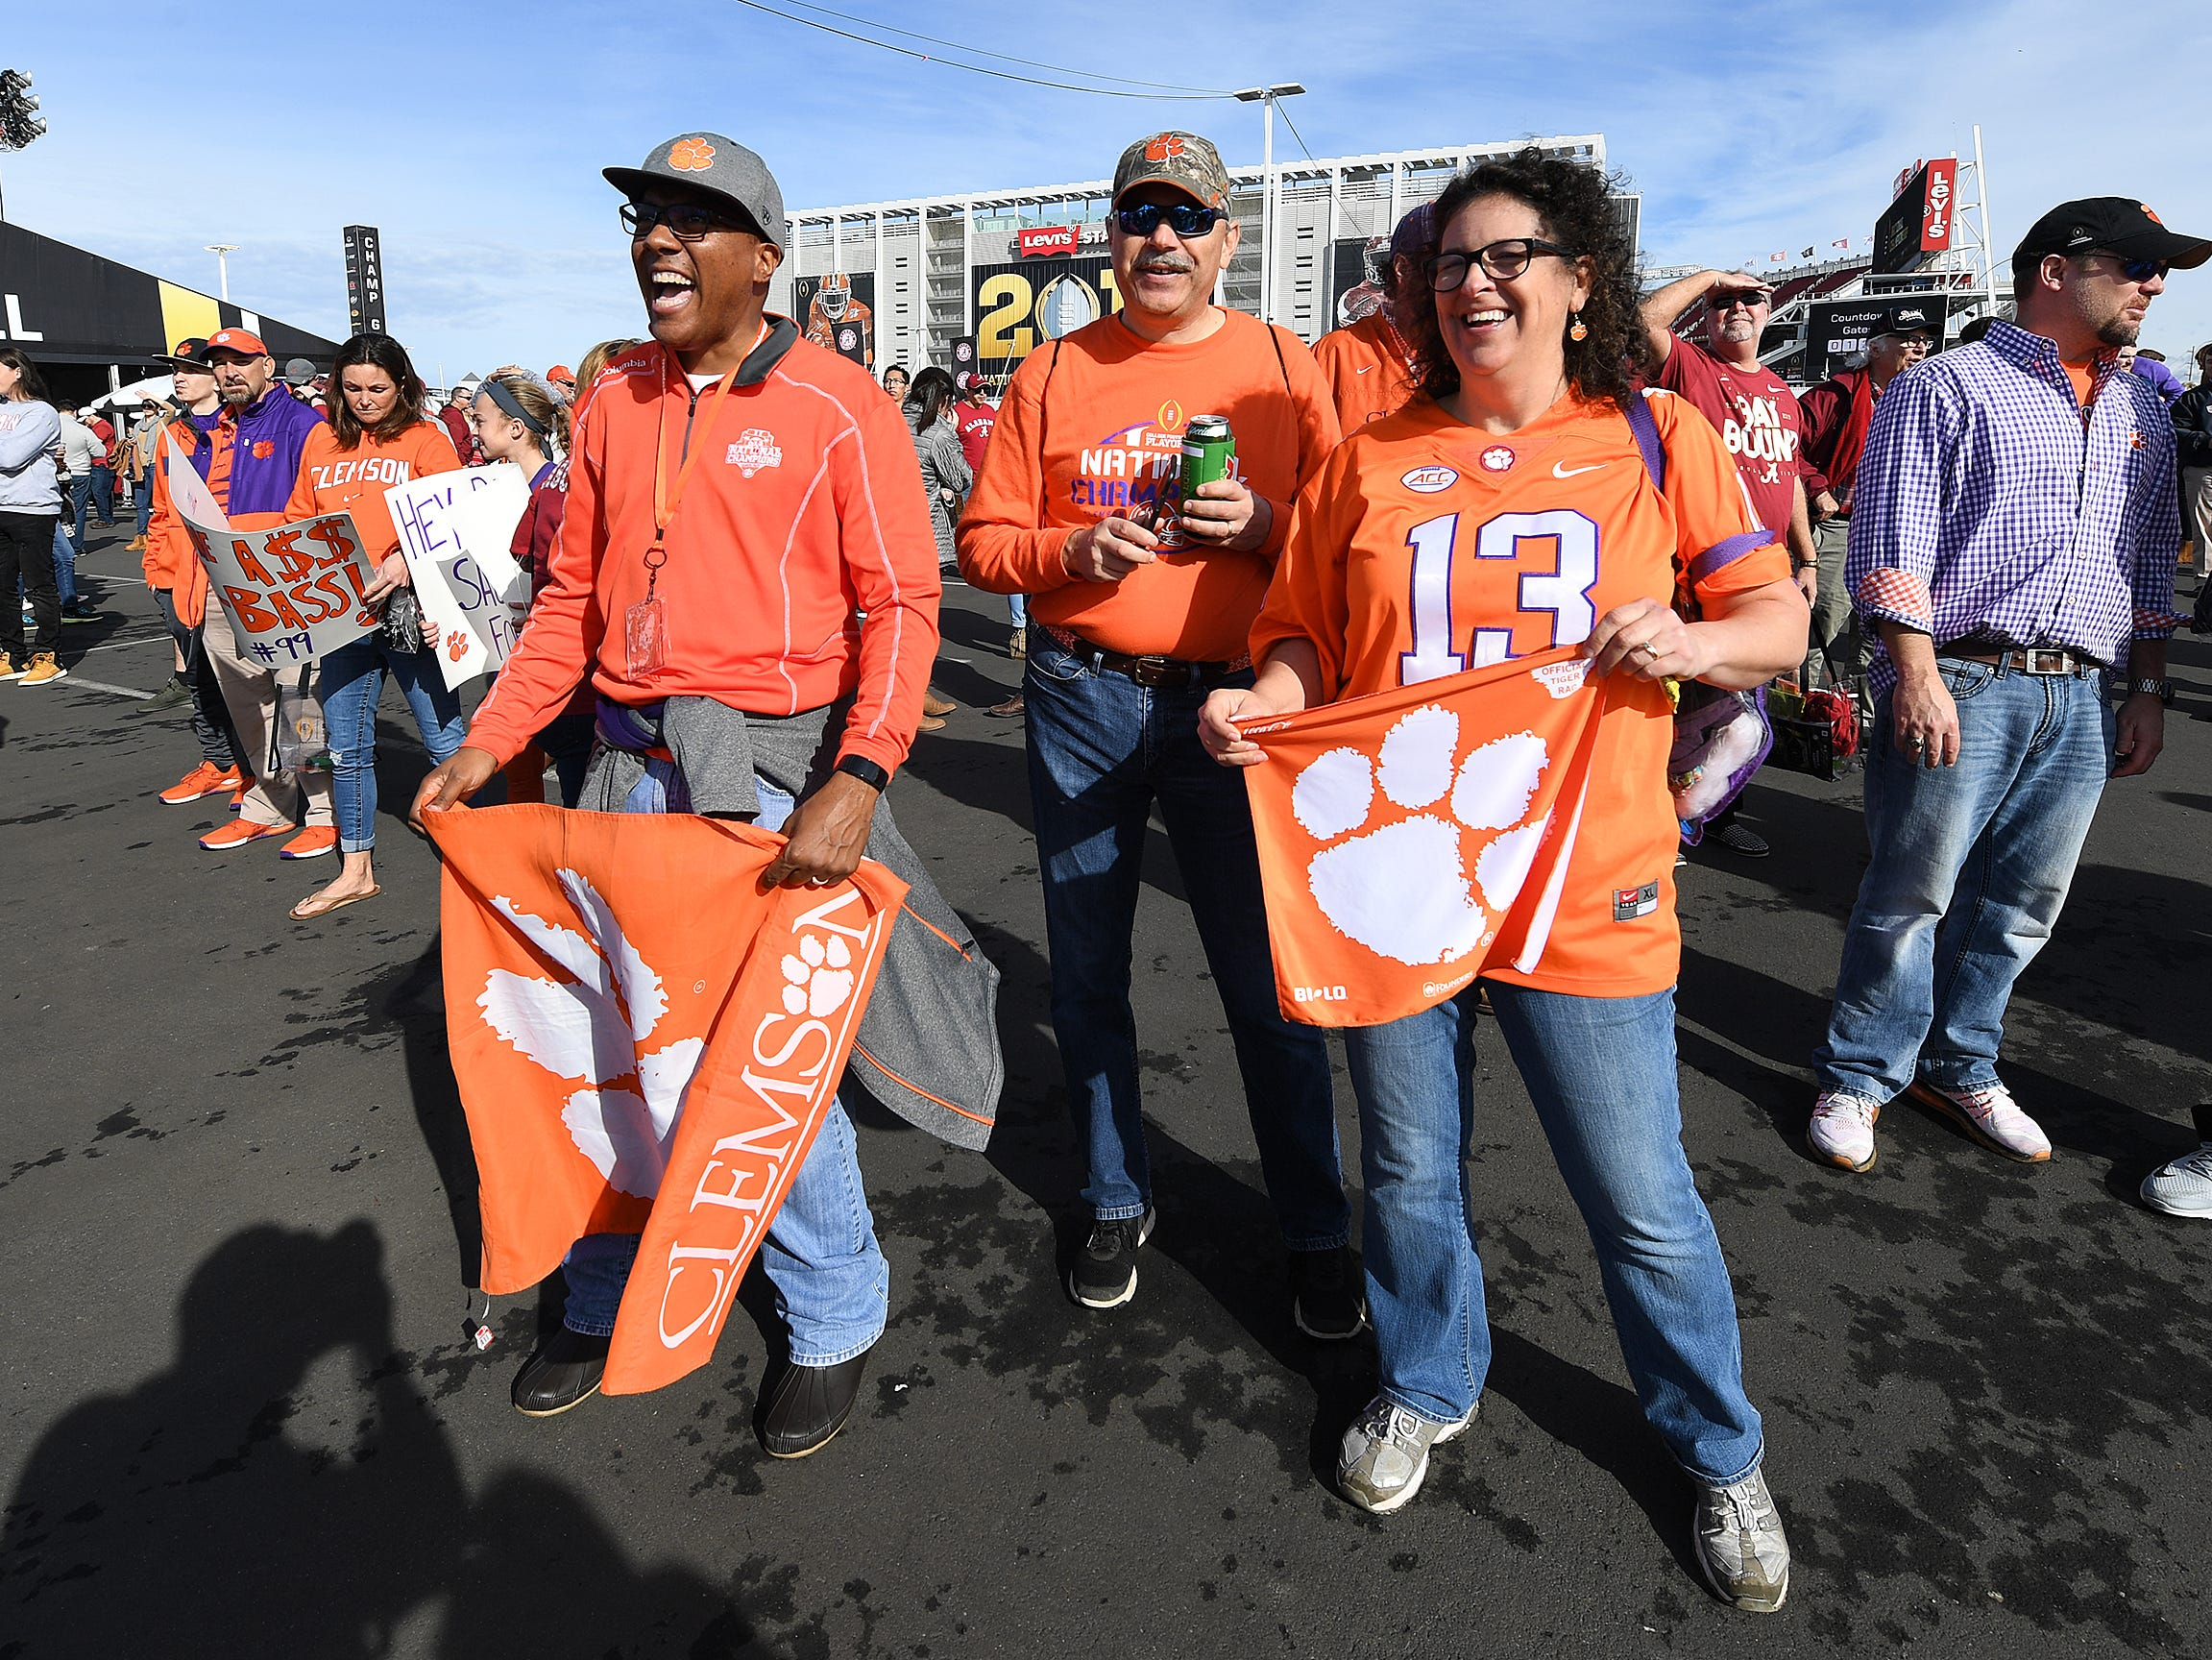 Clemson fans during the College Football Championship Playoff Tailgate outside Levi's Stadium in Santa Clara, CA Monday, January 7, 2019.